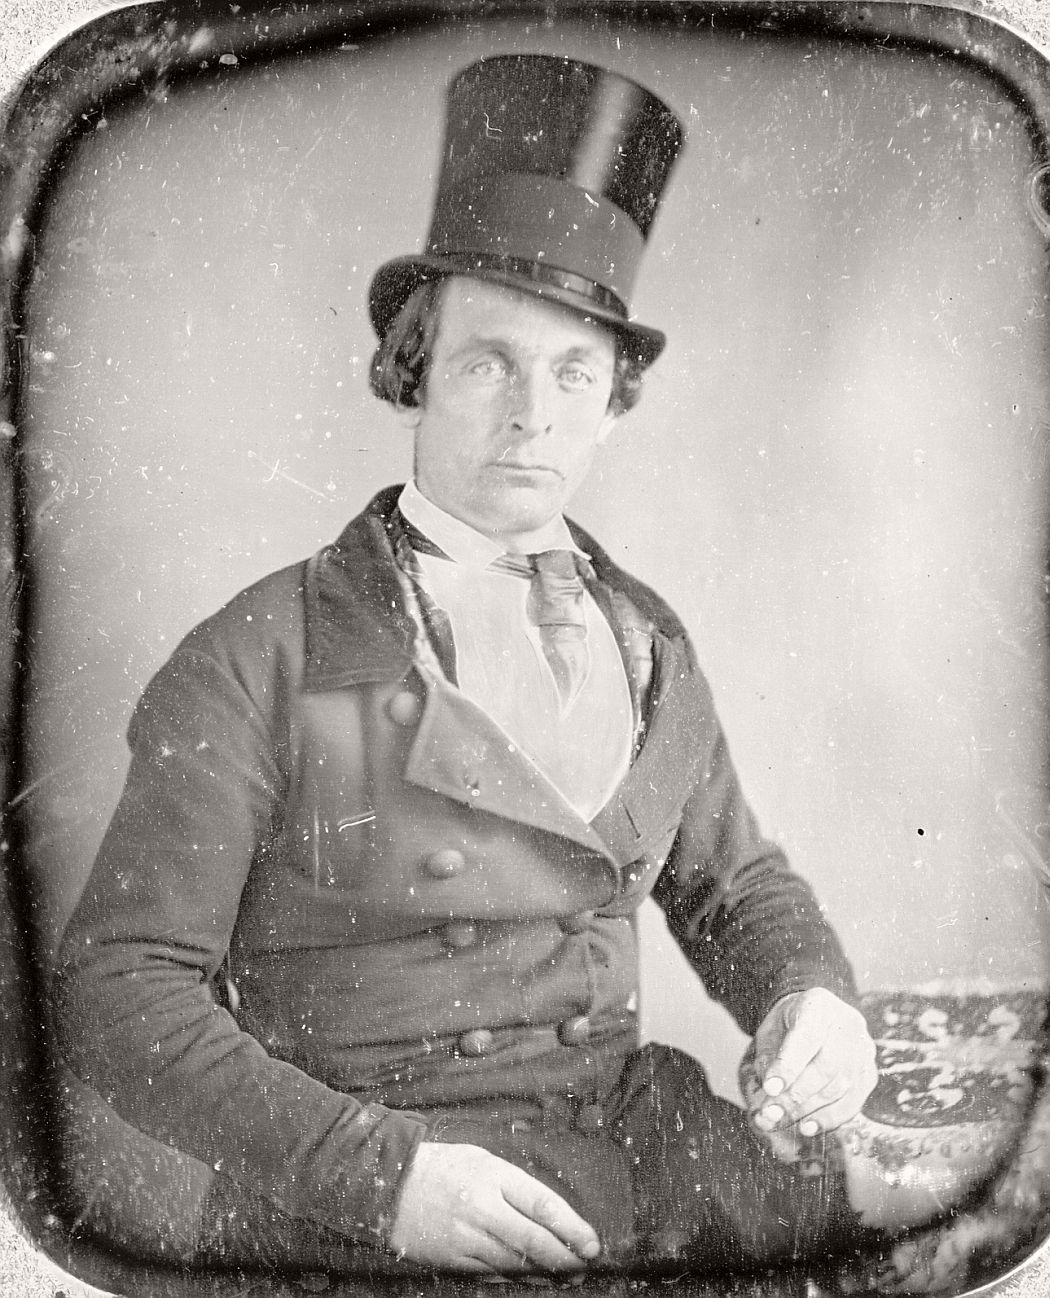 victorian-era-daguerreotype-of-men-in-hat-1850s-xix-century-20